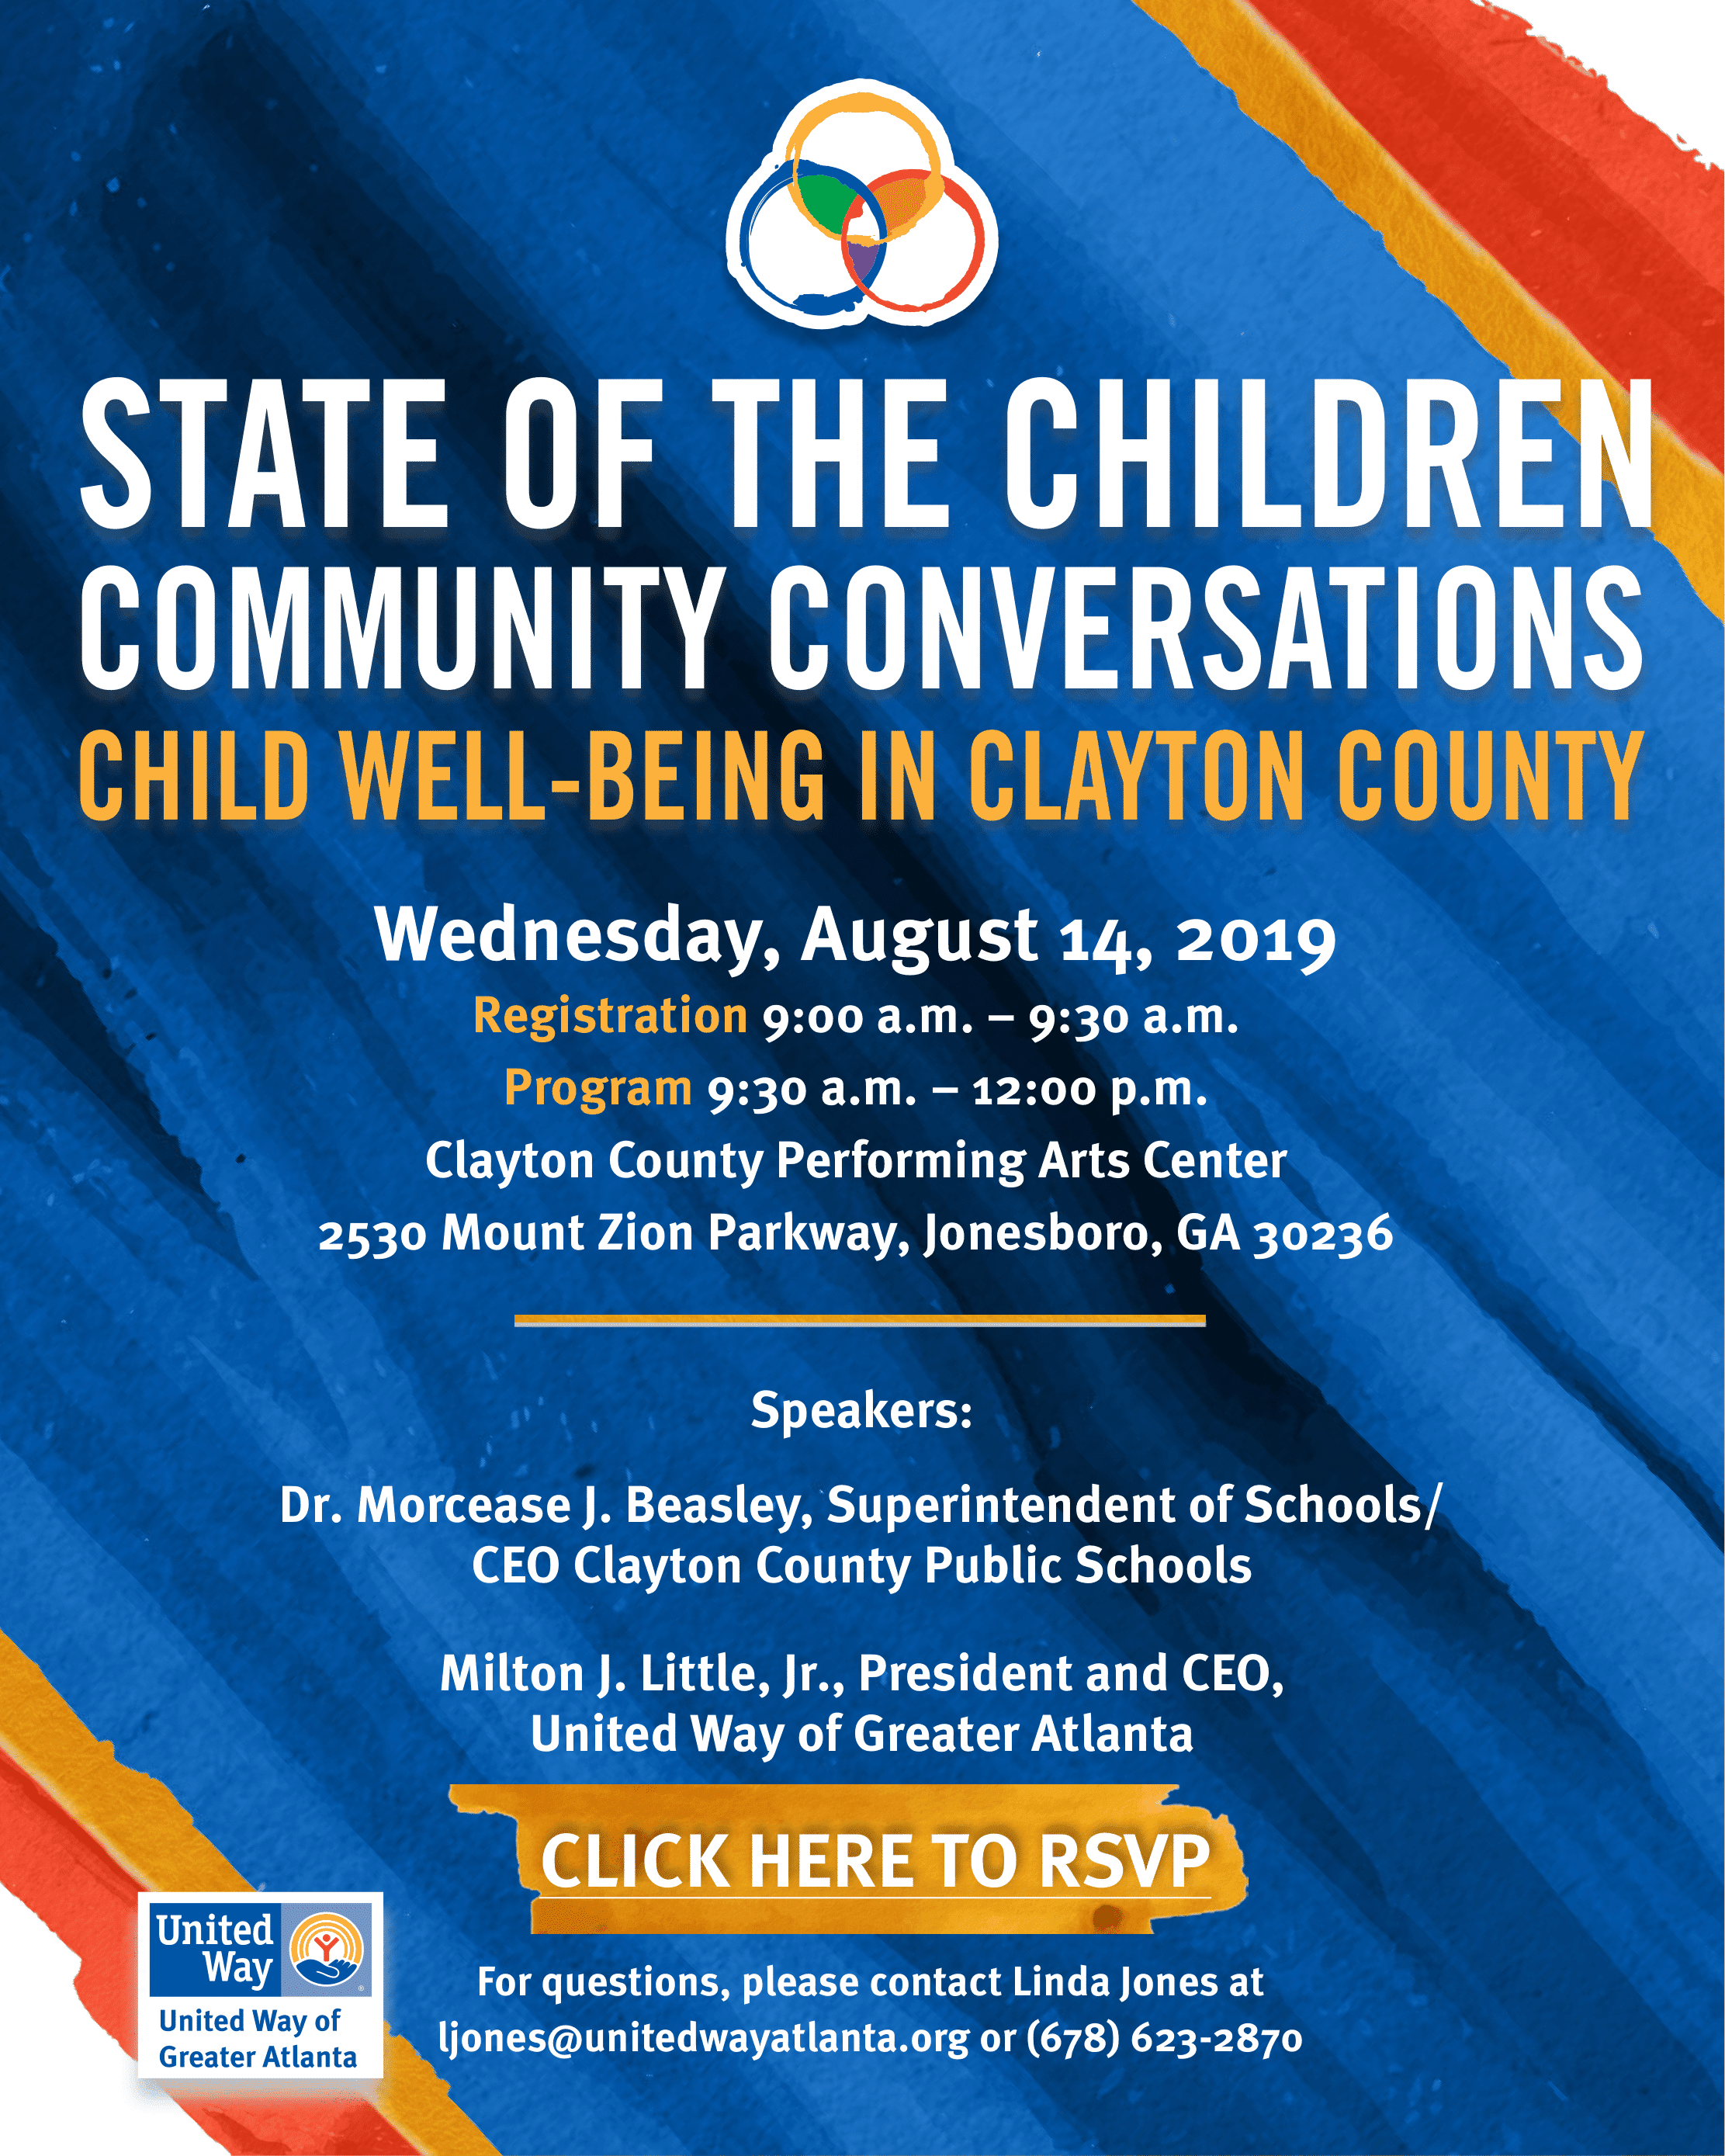 State of the Children Event